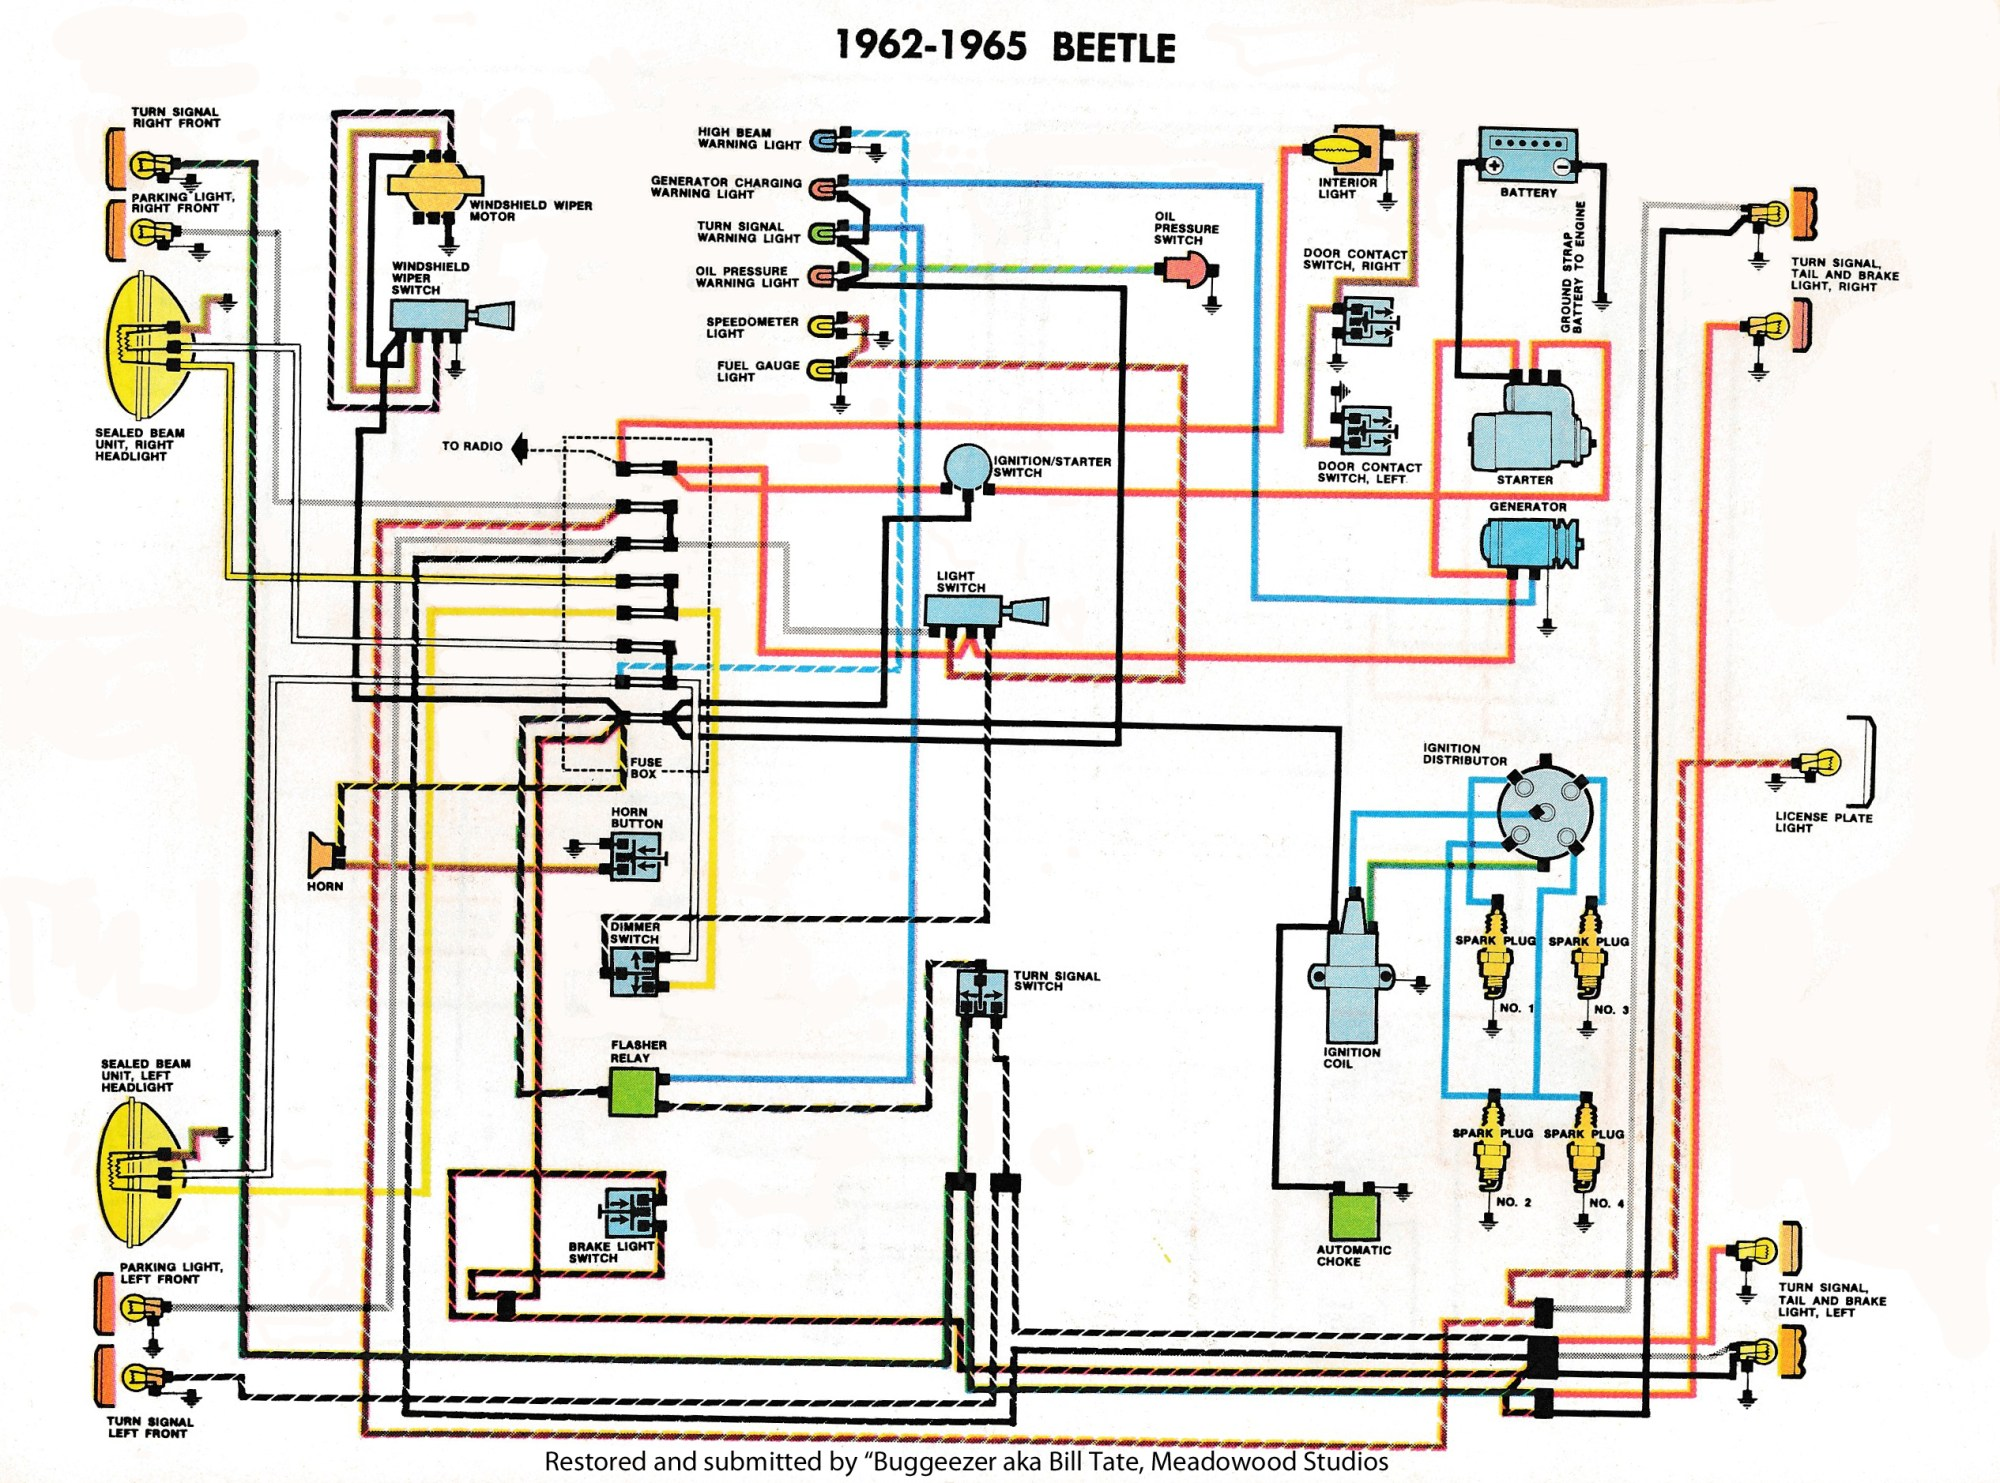 hight resolution of 1955 porsche wiring diagram wiring library rh 85 codingcommunity de koenigsegg diagram porsche 911 diagram